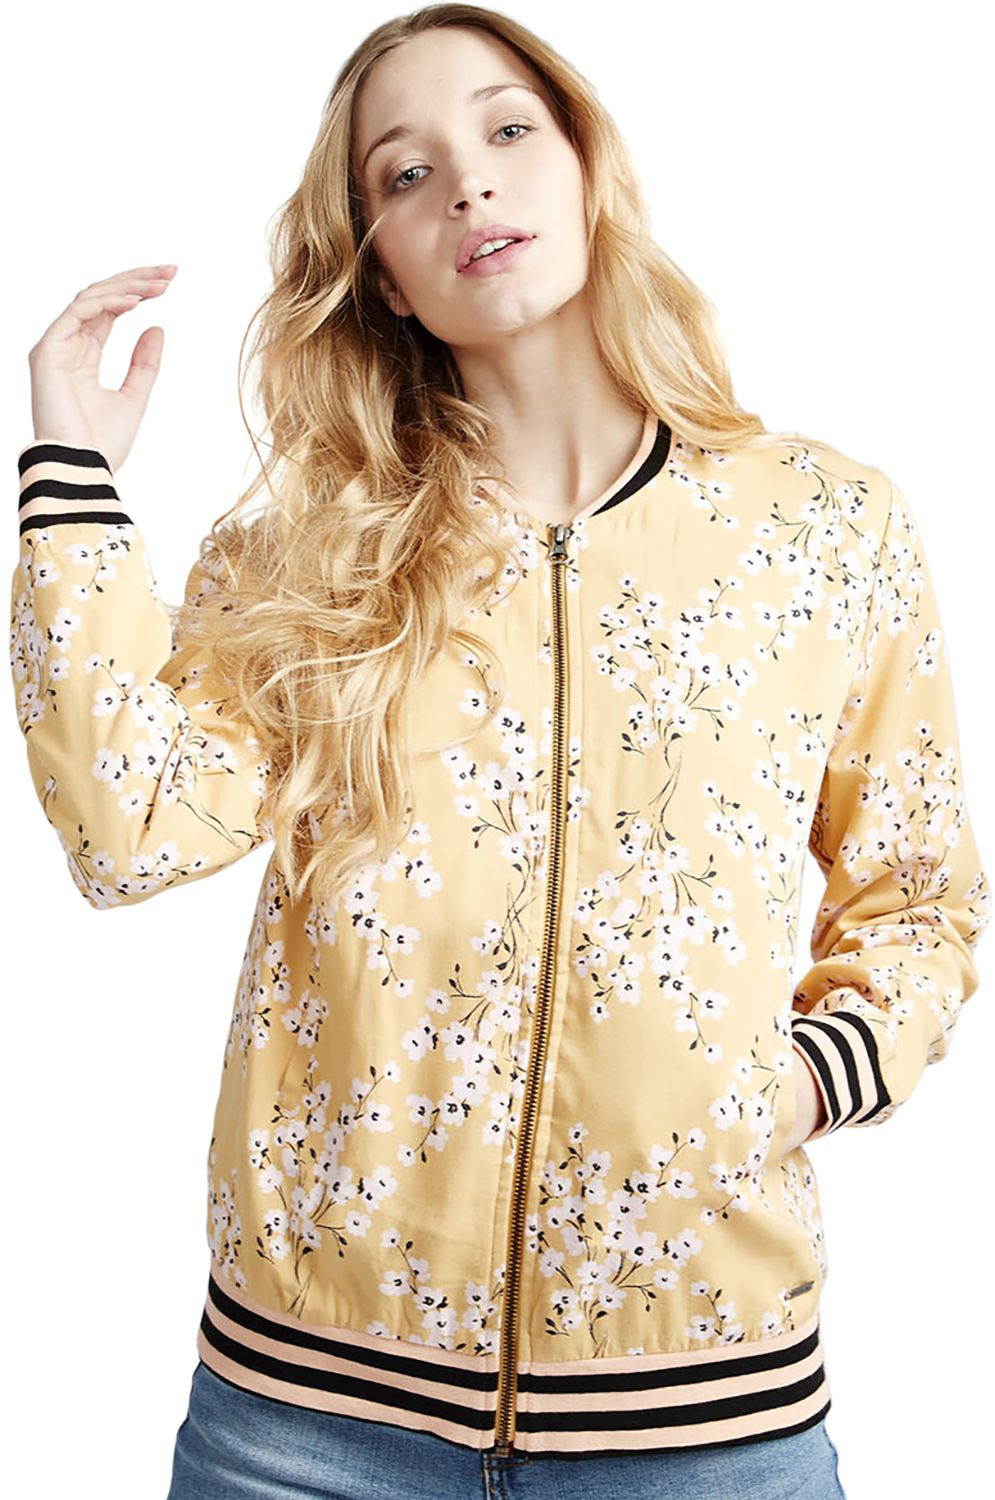 Billabong Jacket RETRO BLOOM SEEKERS OF THE SUN Golden Hour